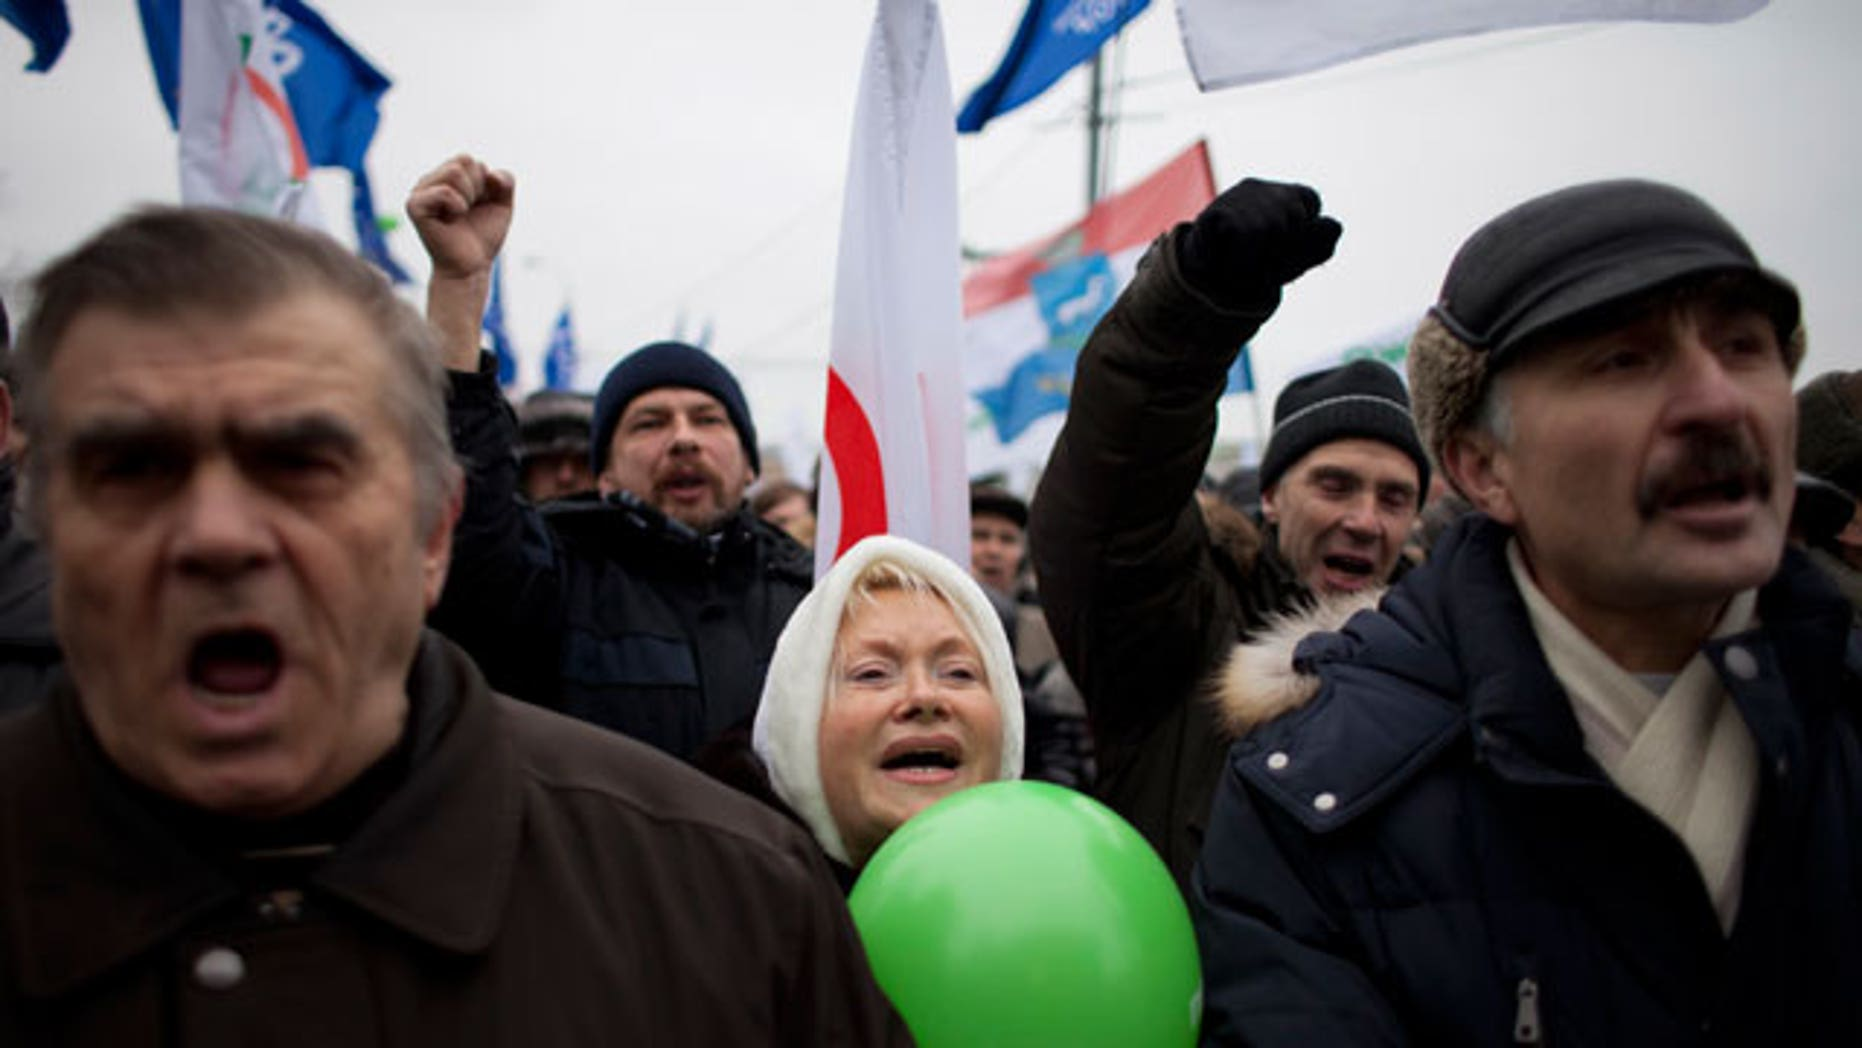 Dec. 17, 2011: With Yabloko party flags in the background, Russian protesters shout slogans during a rally to protest against alleged vote rigging at Bolotnaya Square, on an island in the Moscow River adjacent to the Kremlin in Moscow, Russia.